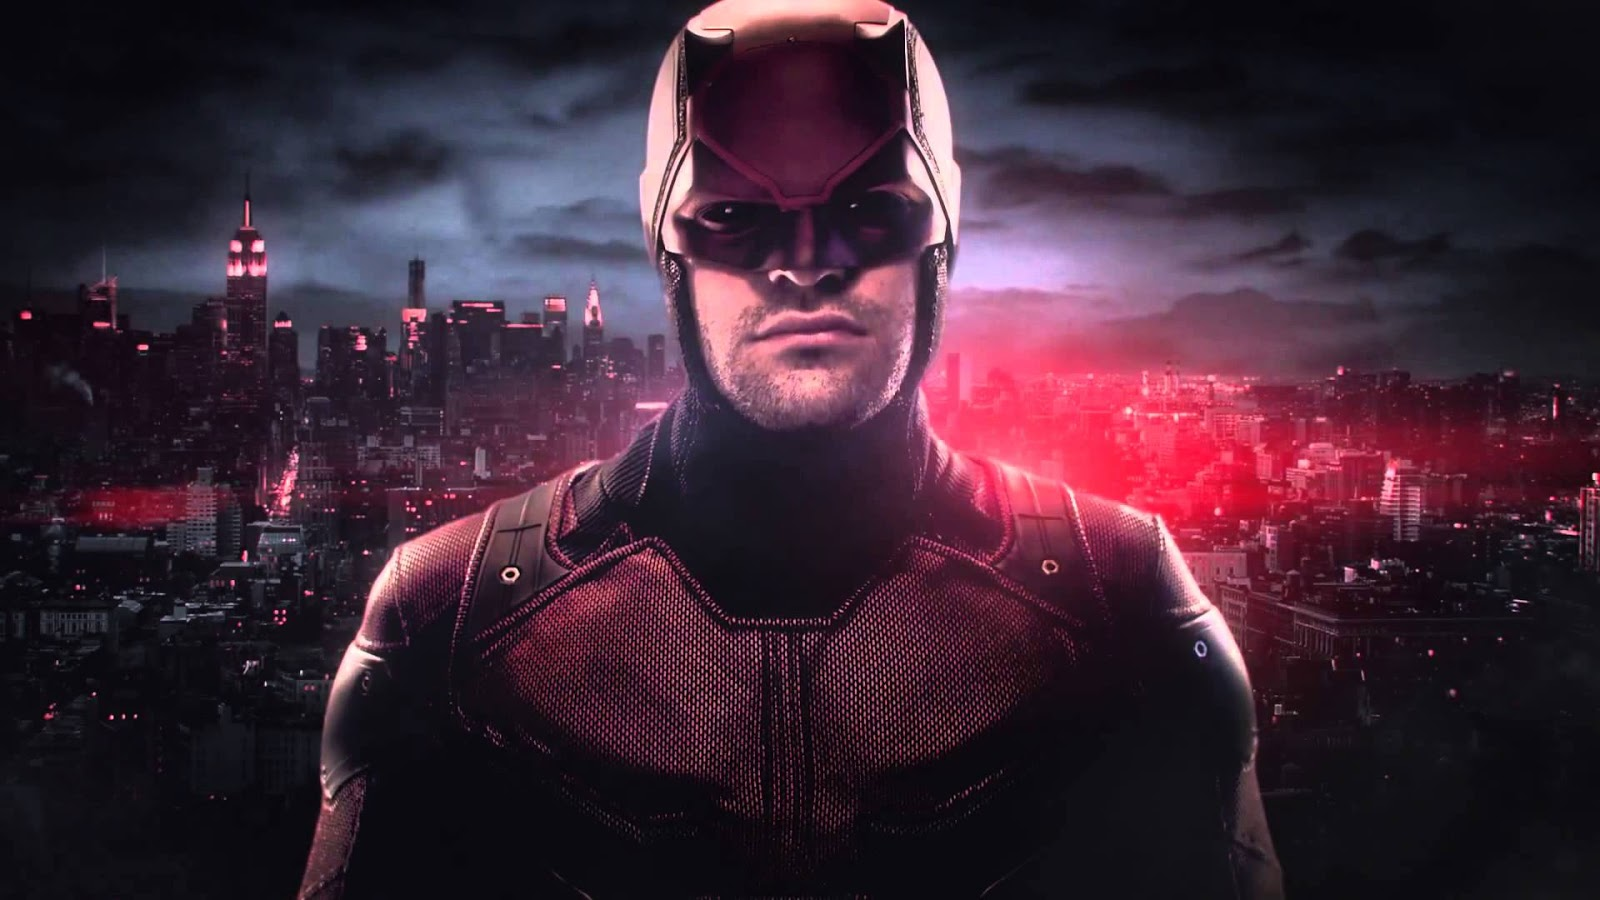 watch daredevil season 2 online free daredevil season 2